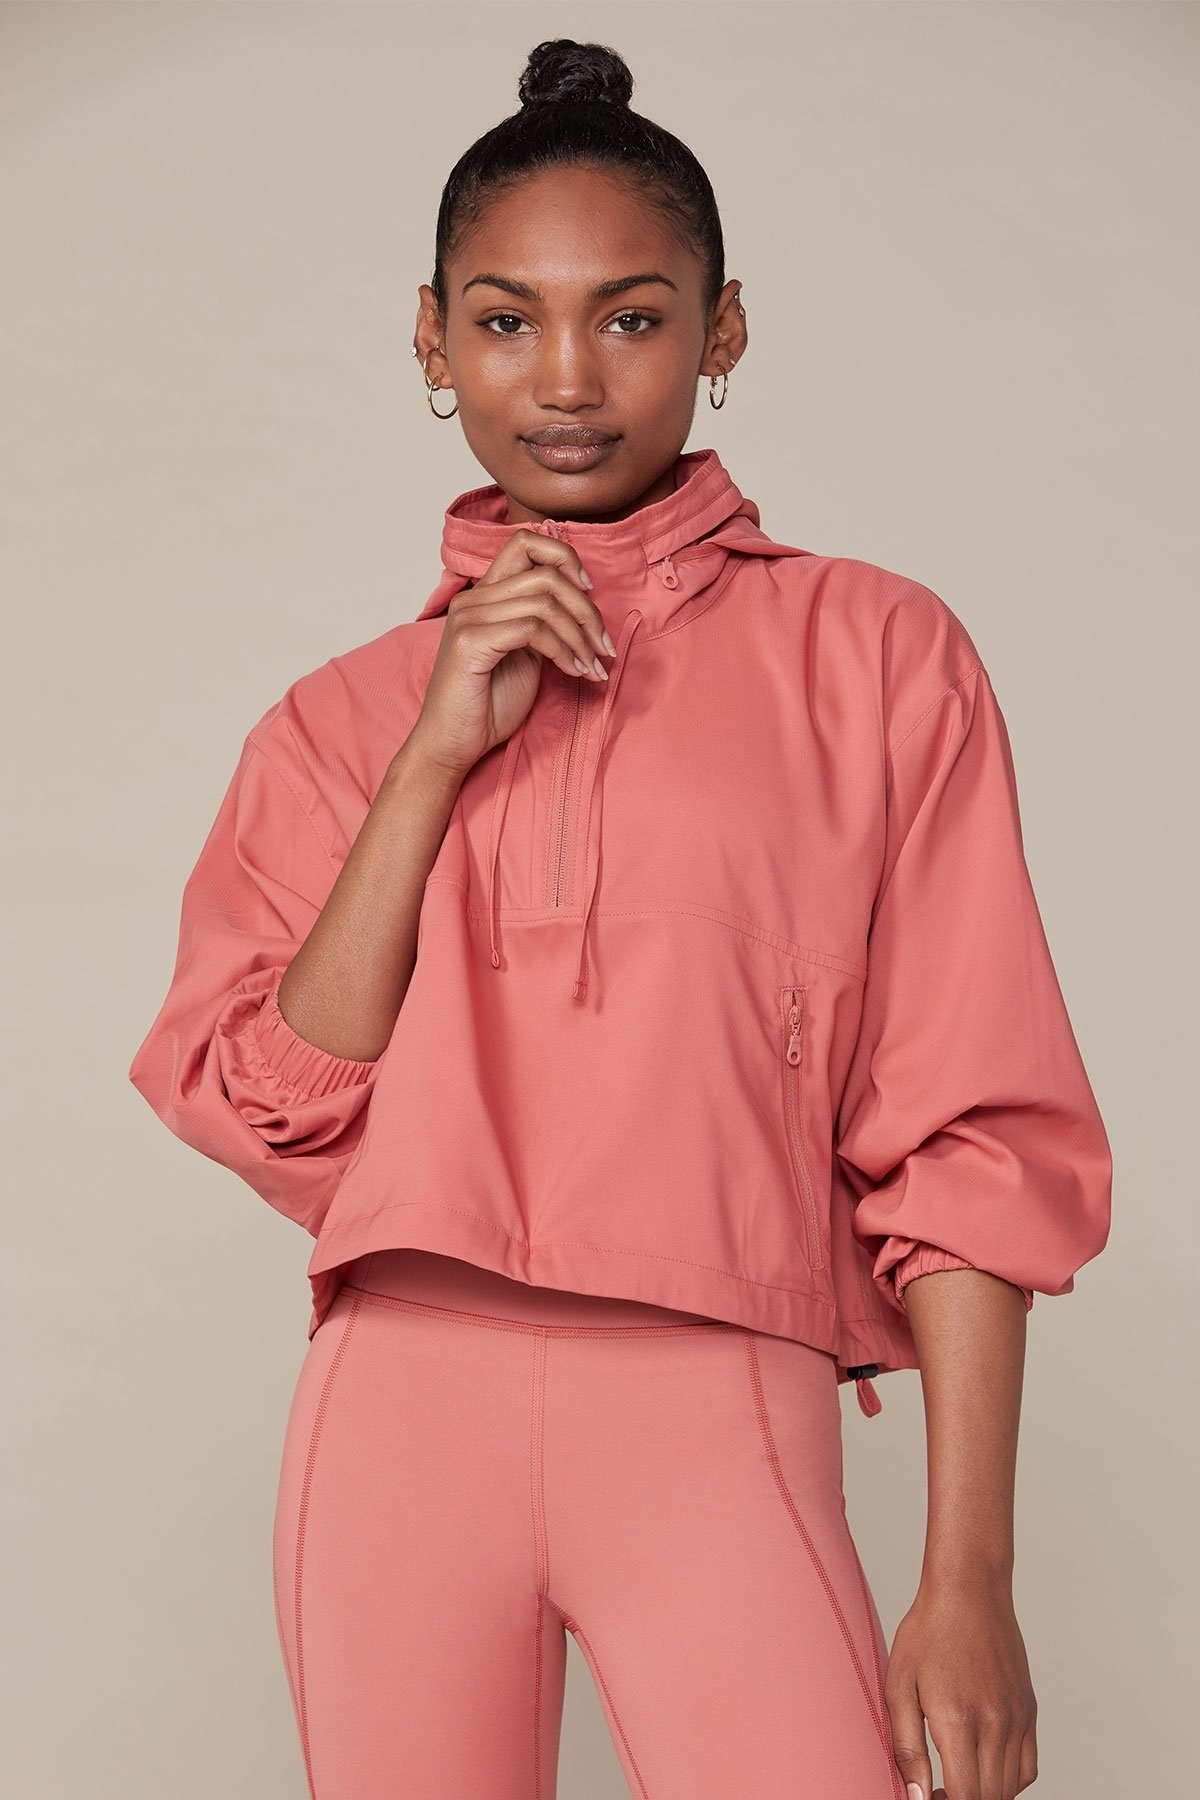 Model wearing a clay-colored half zip windbreaker